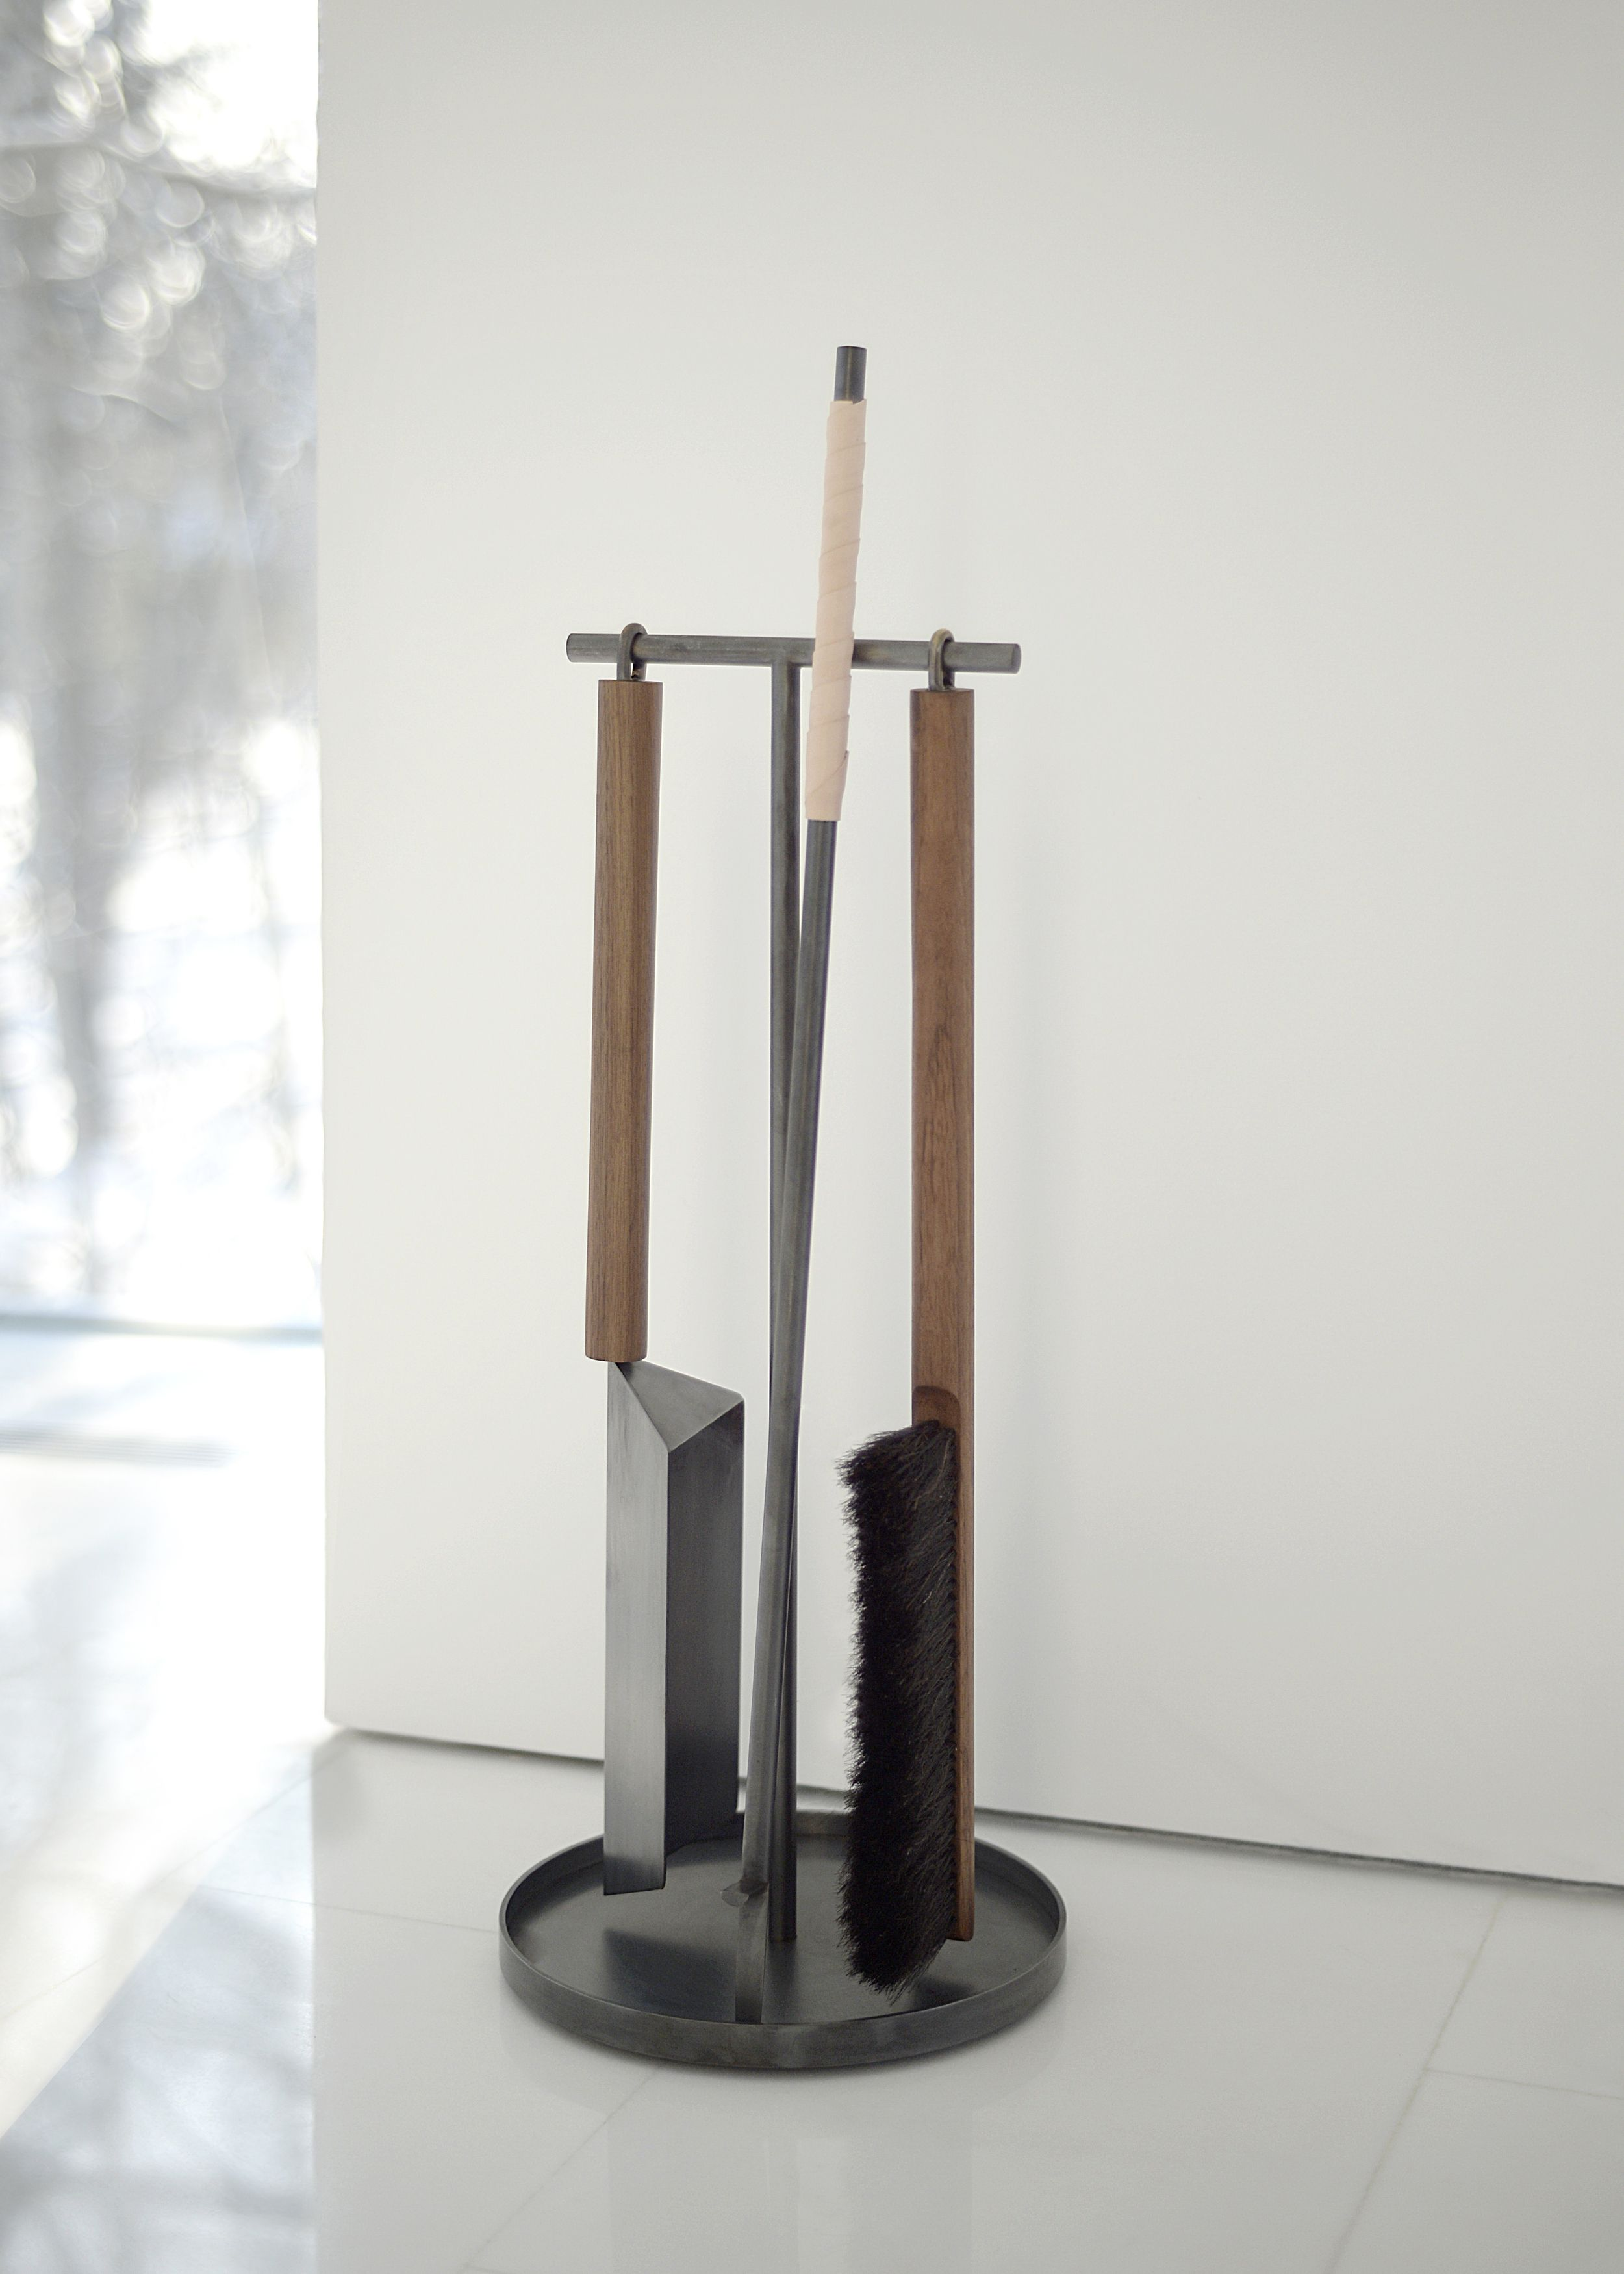 Fireplace Poker Sets Fire Tools Crafted Objects Fireplace Tools Log Burner